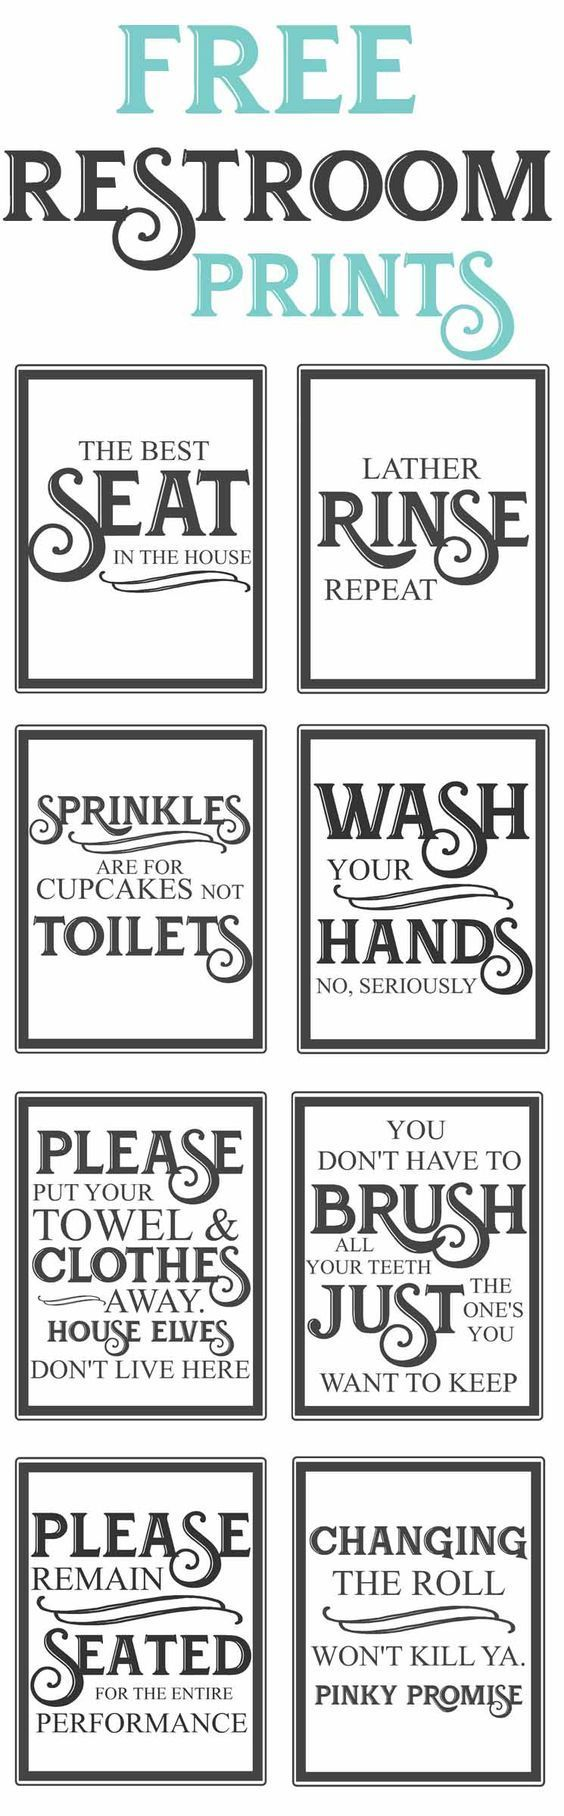 graphic relating to Printable Bathroom Quotes titled Totally free Typical Rest room Printables Favored Do-it-yourself and Suitable